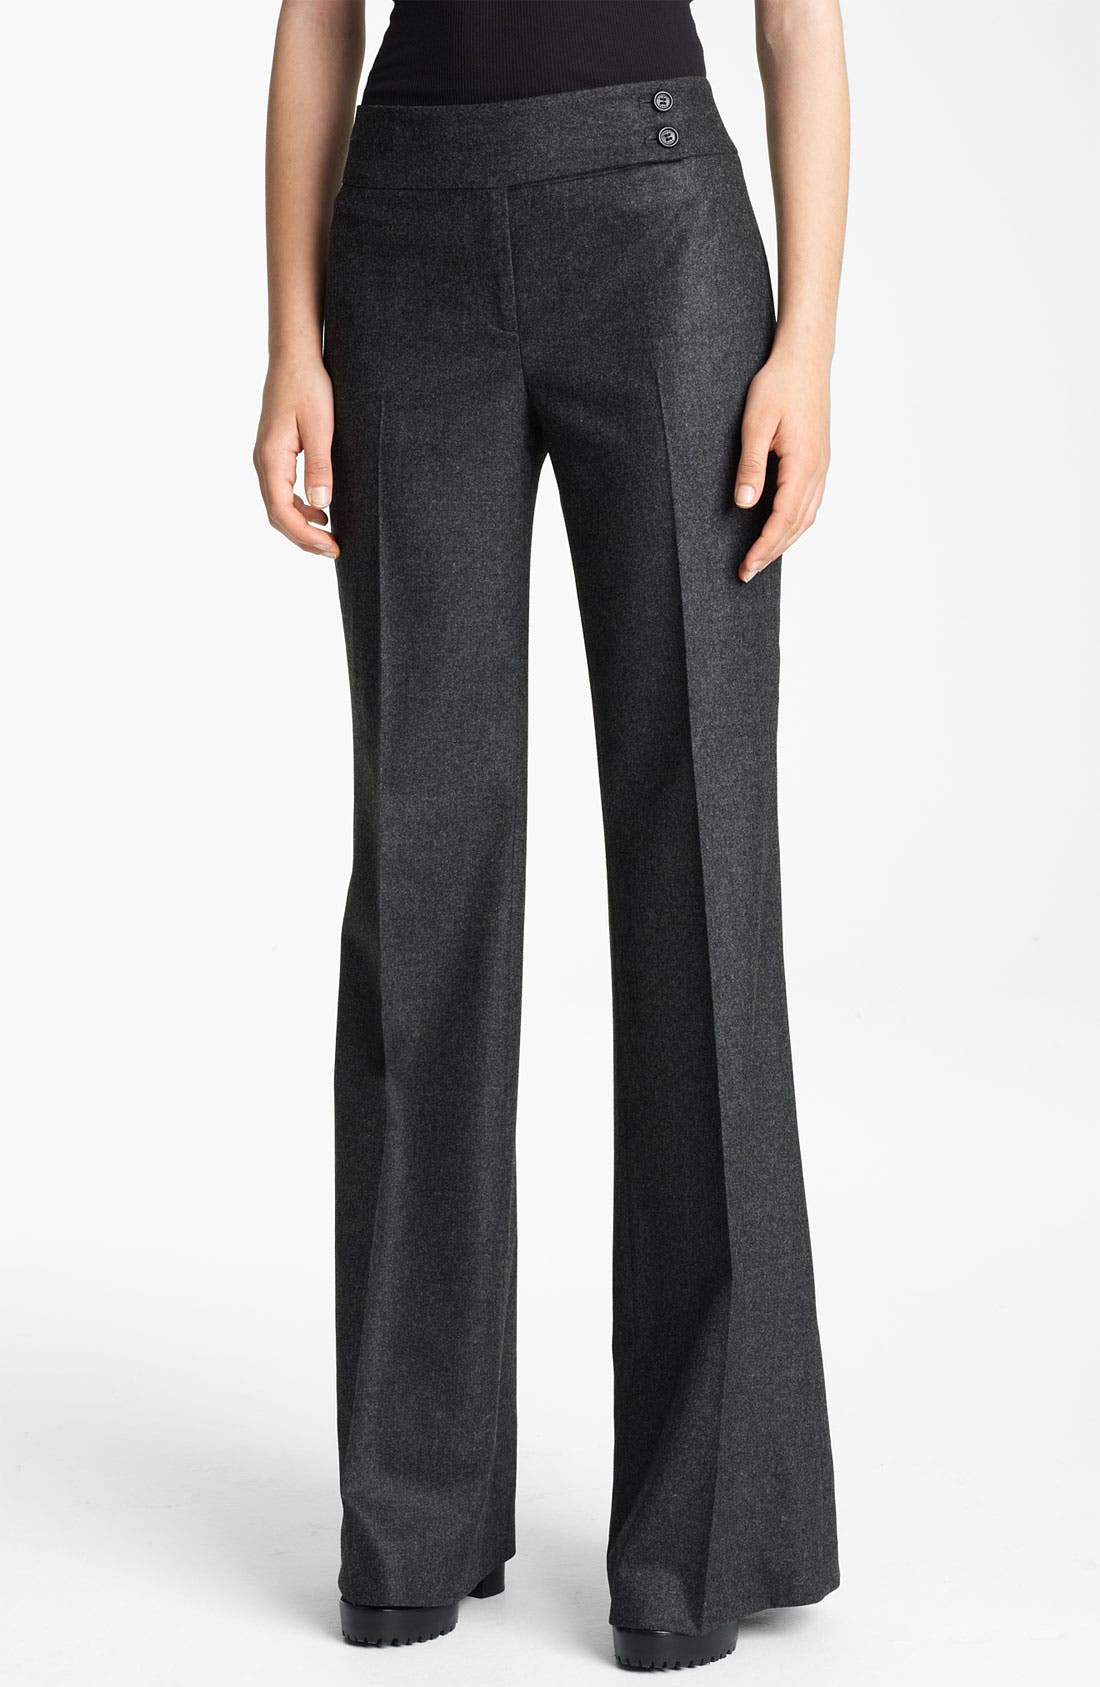 Main Image - Michael Kors Flare Leg Stretch Flannel Pants